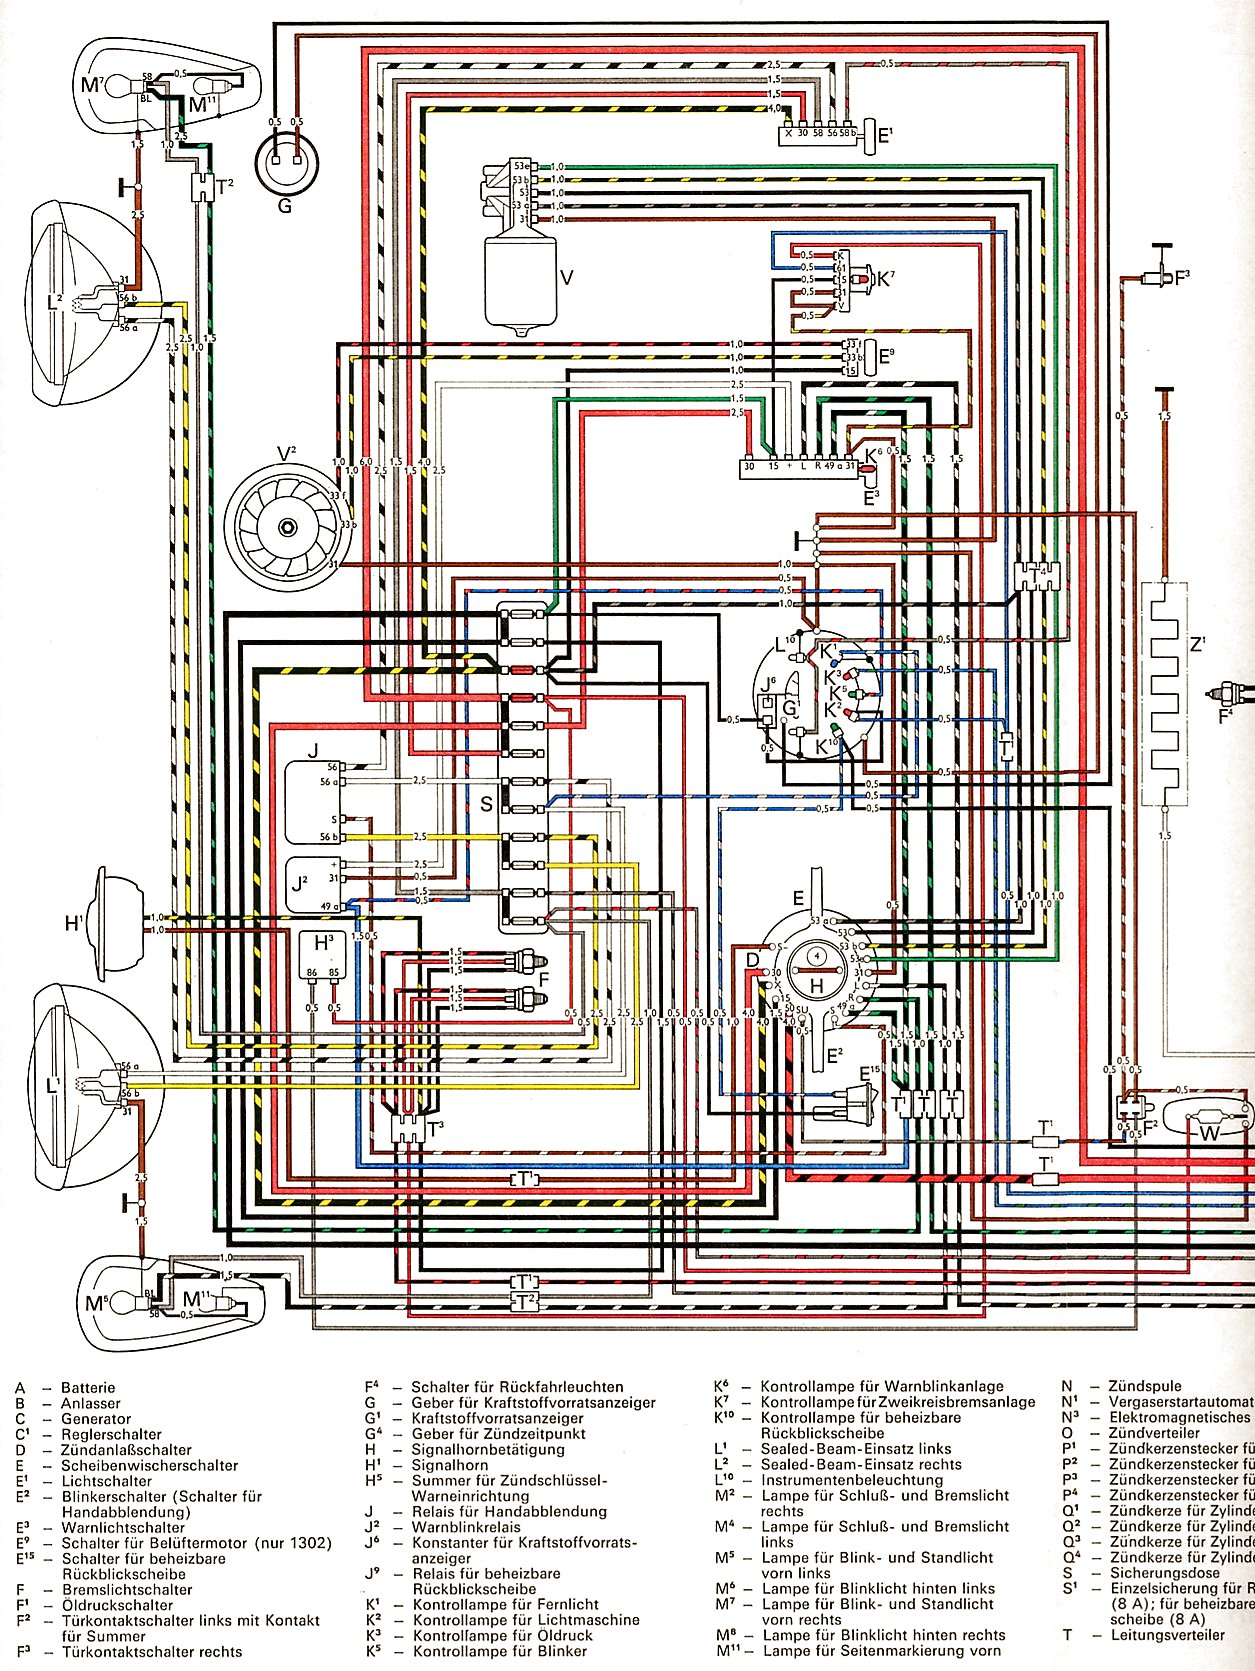 71 Super Beetle Wiring Diagram Info 69 Volkswagen Diagrams Schematics Rh Nestorgarcia Co 1979 Vw 1976